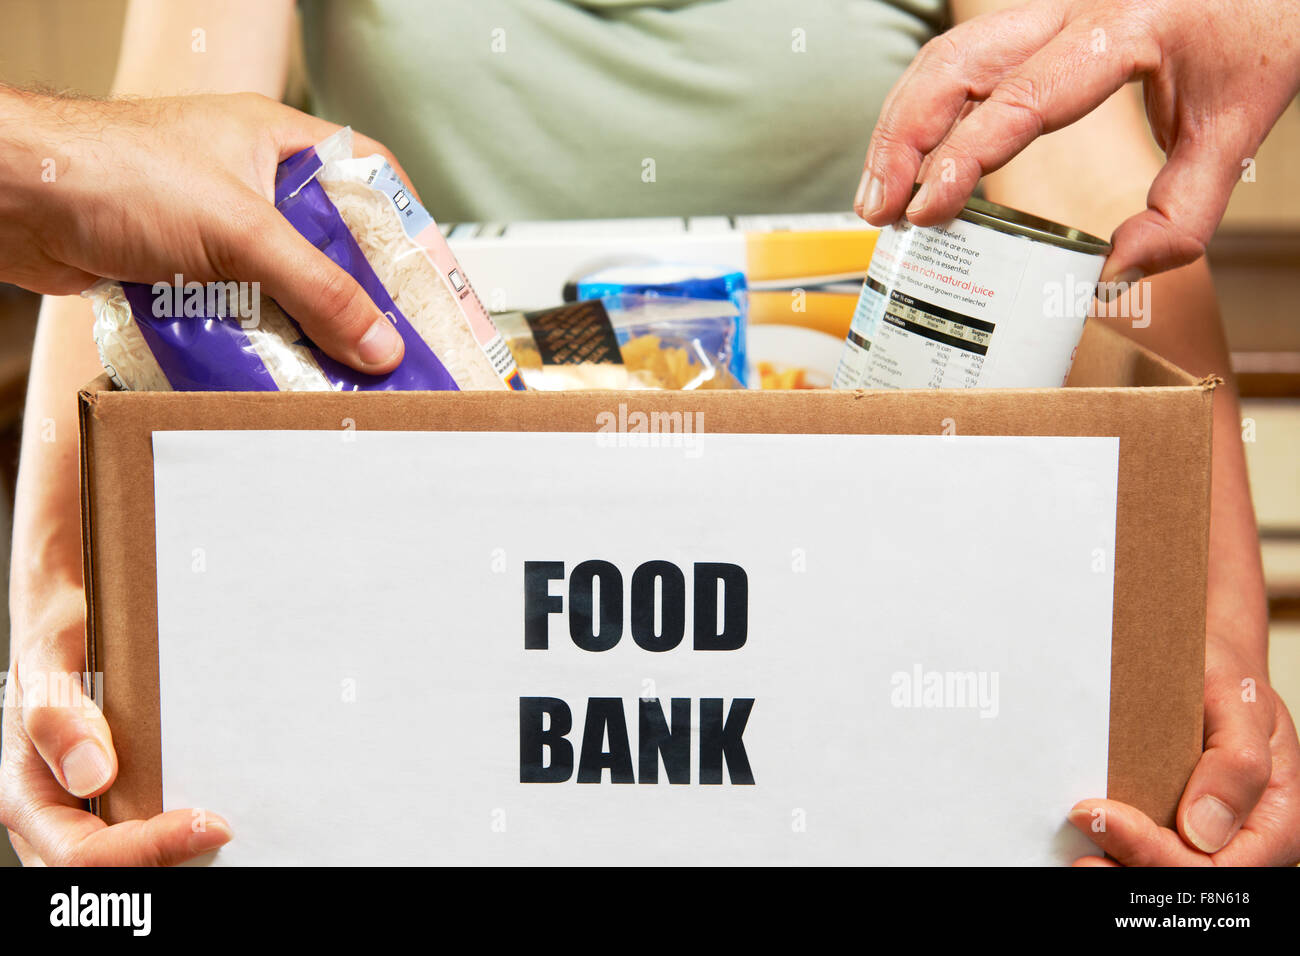 Making Donations To Food Bank - Stock Image